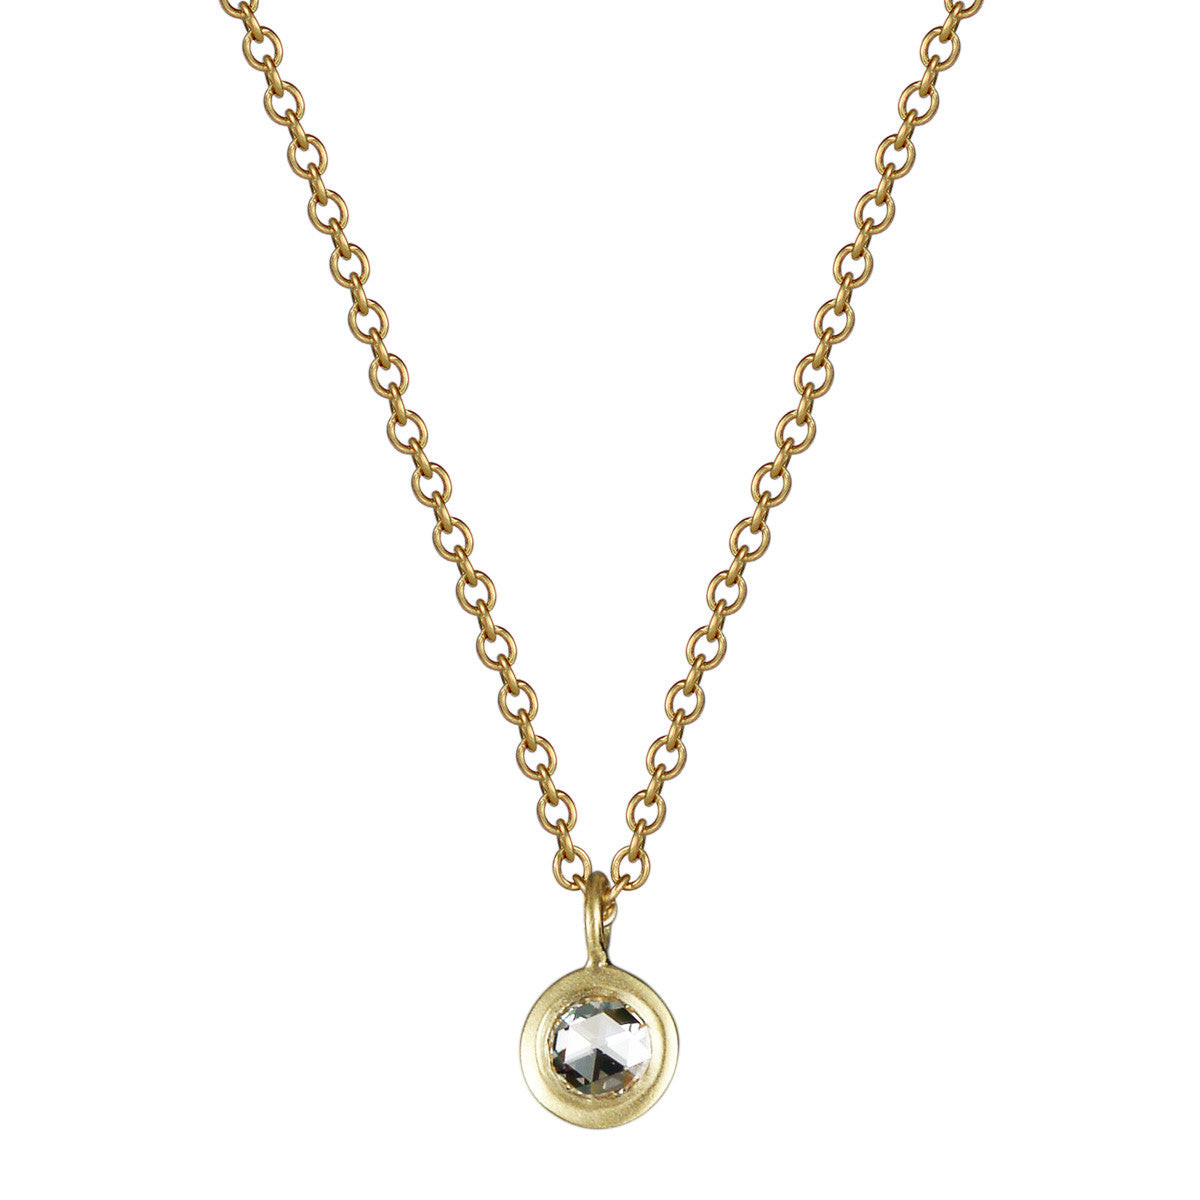 18k gold single diamond pendant mero 18k gold single diamond pendant aloadofball Choice Image